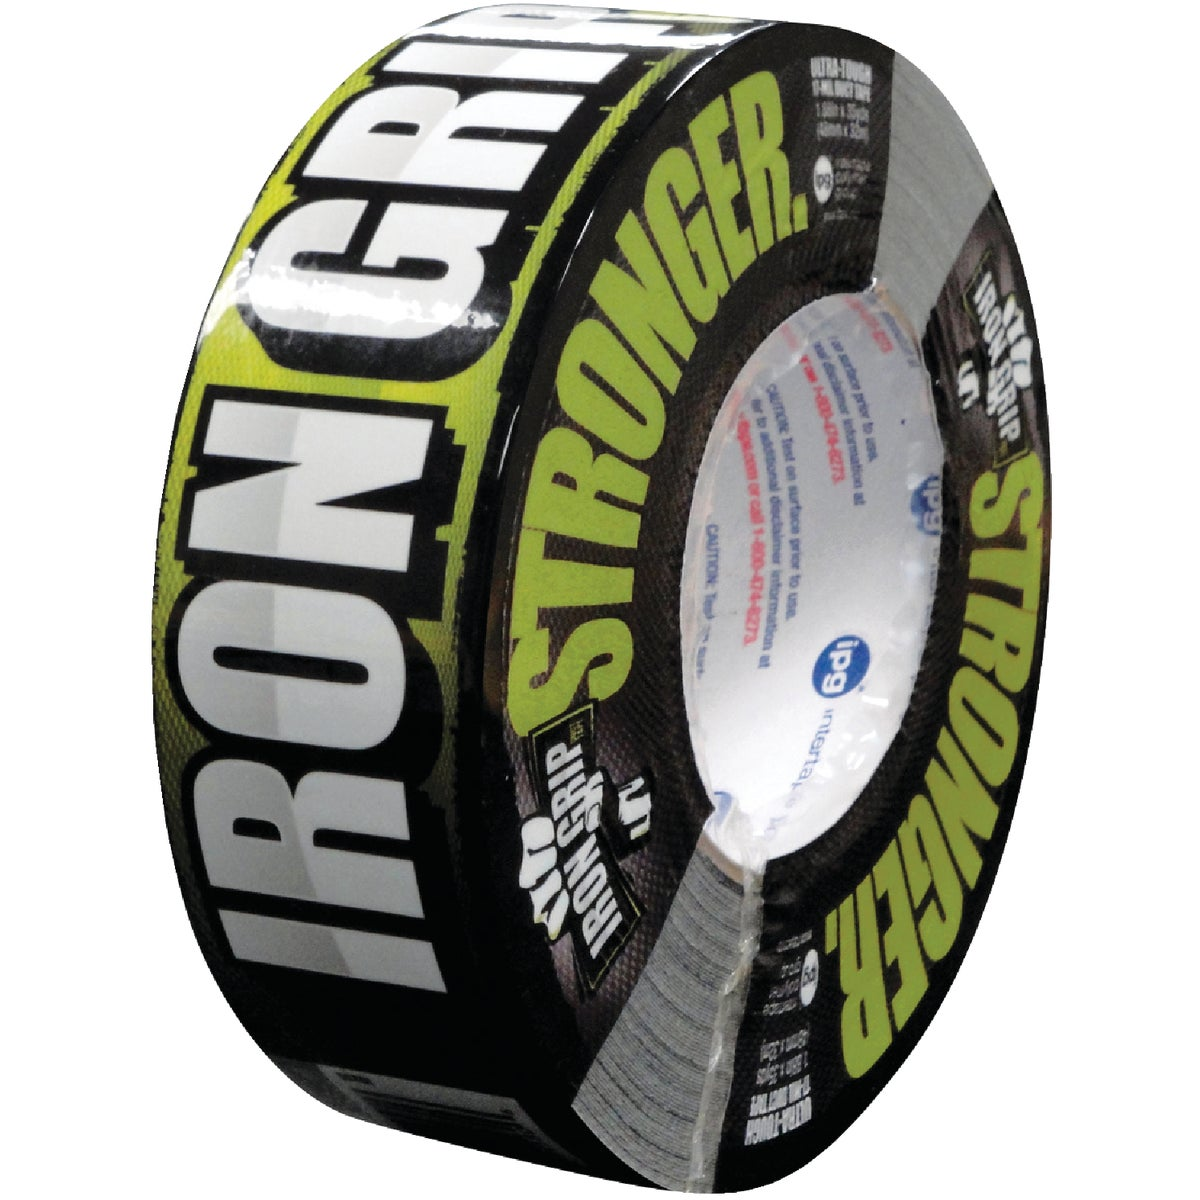 "1.87""X35YD HD DUCT TAPE - IG235 by Intertape Polymer"